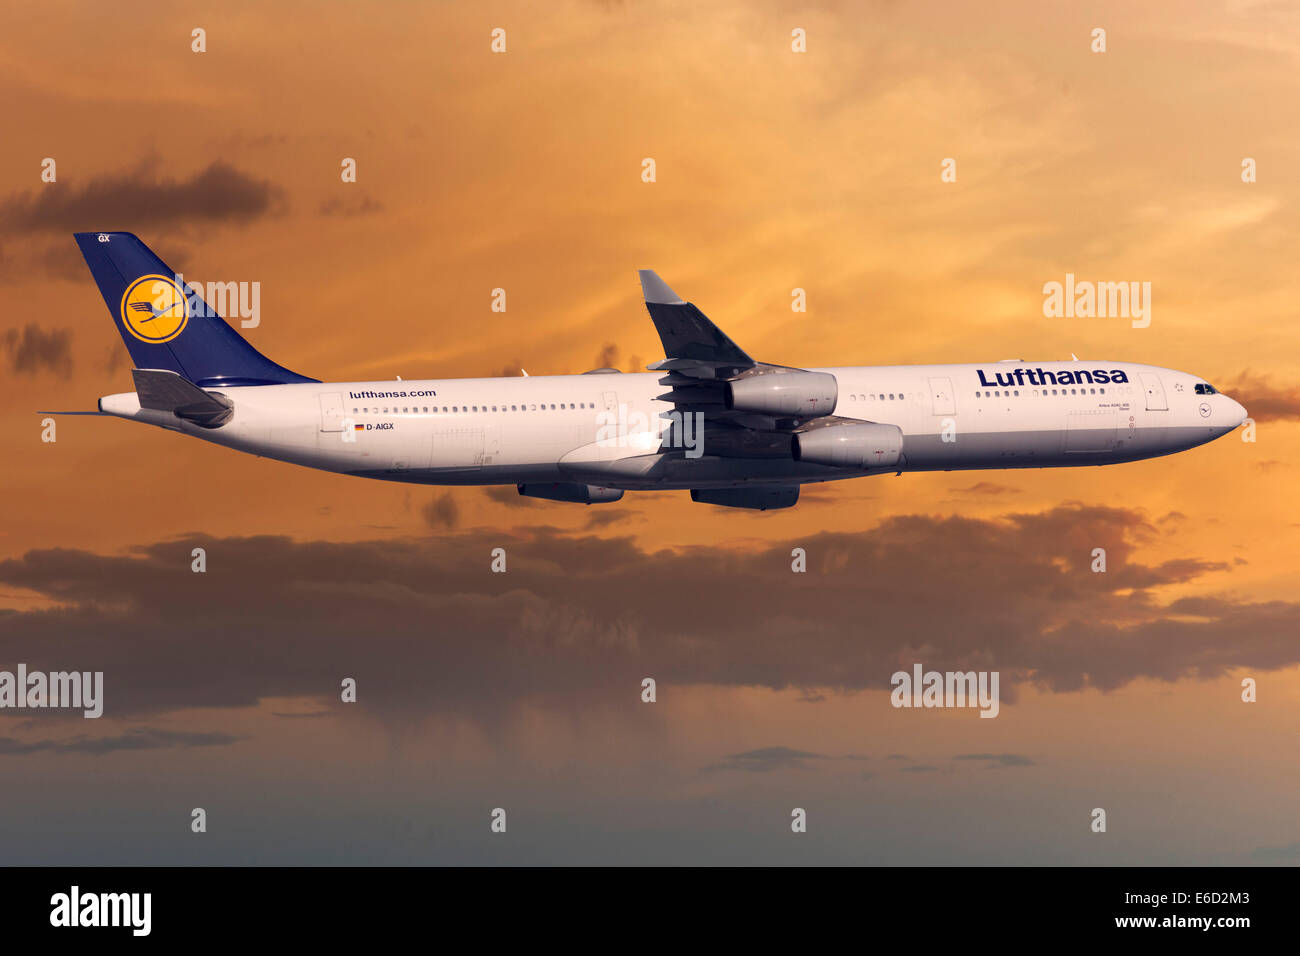 Lufthansa Airbus A330-343 in flight in the evening light - Stock Image